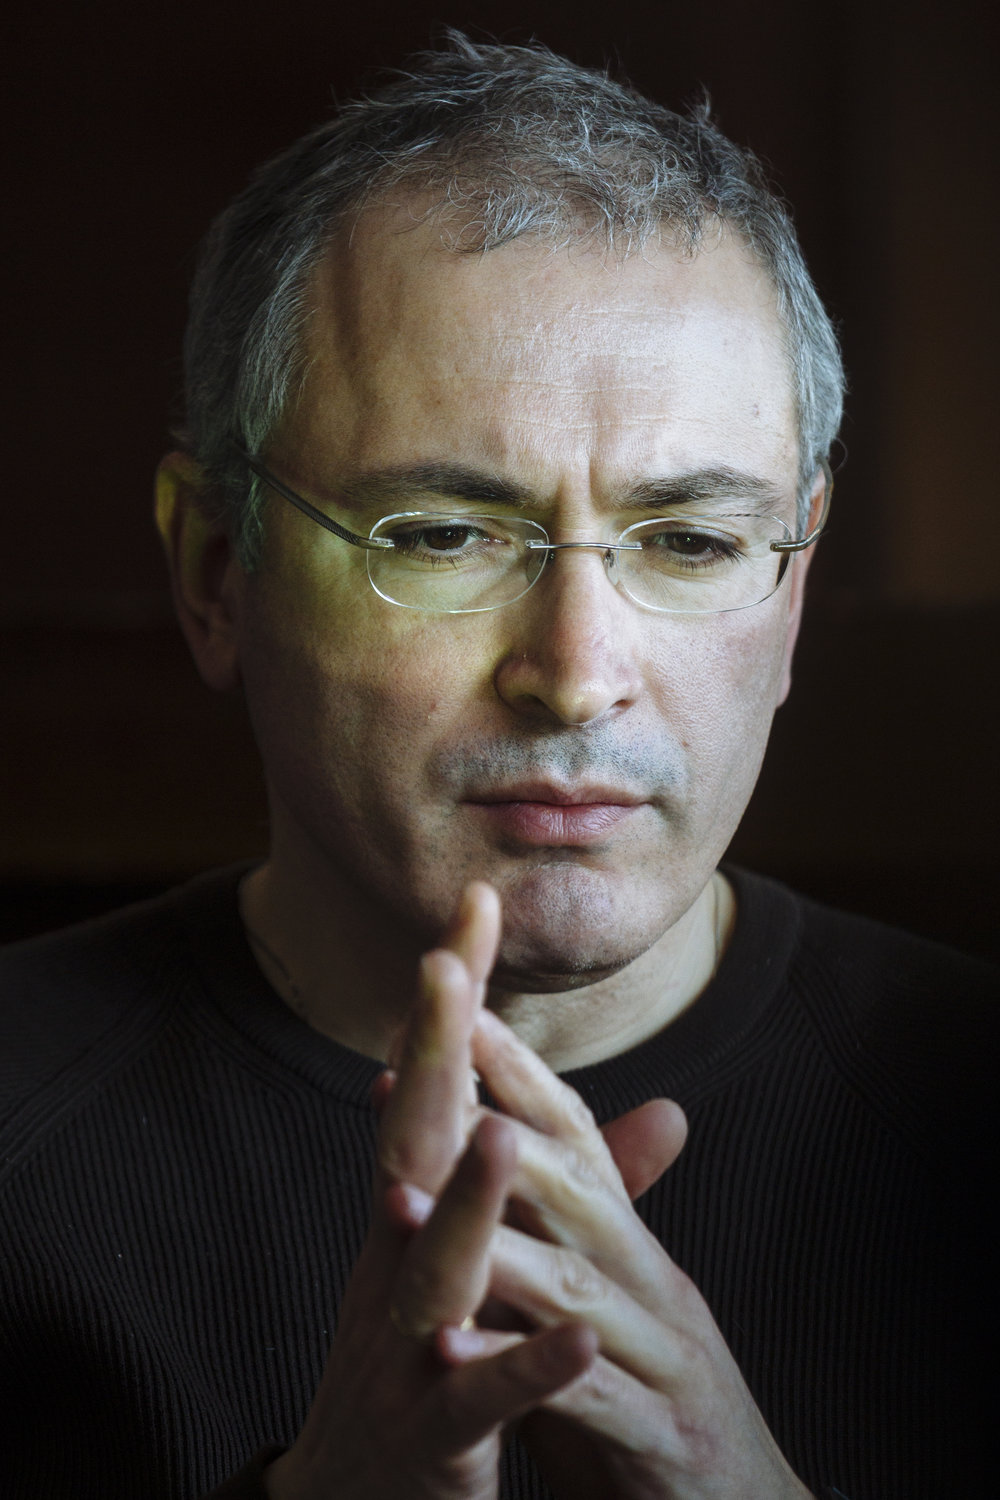 Exiled Russian businessman Mikhail Khodorkovsky listens to a question during a roundtable with journalists at a hotel in Kiev, Ukraine, Monday, March 10, 2014. (AP Photo/David Azia)